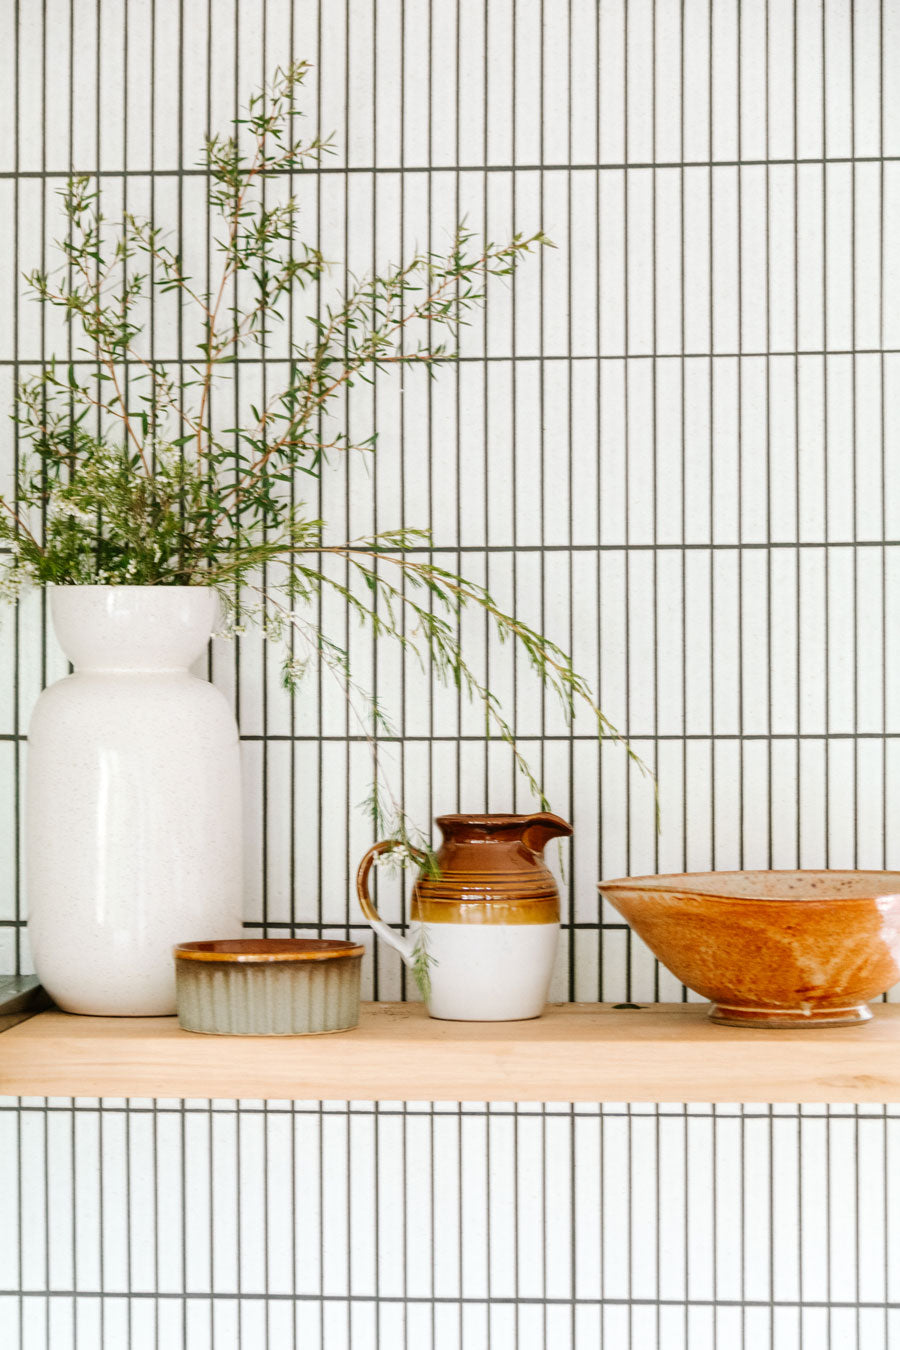 Smor-Kitchen-Where-To-Find-The-Best-Ceramics-Crockery-Secondhand-Stores